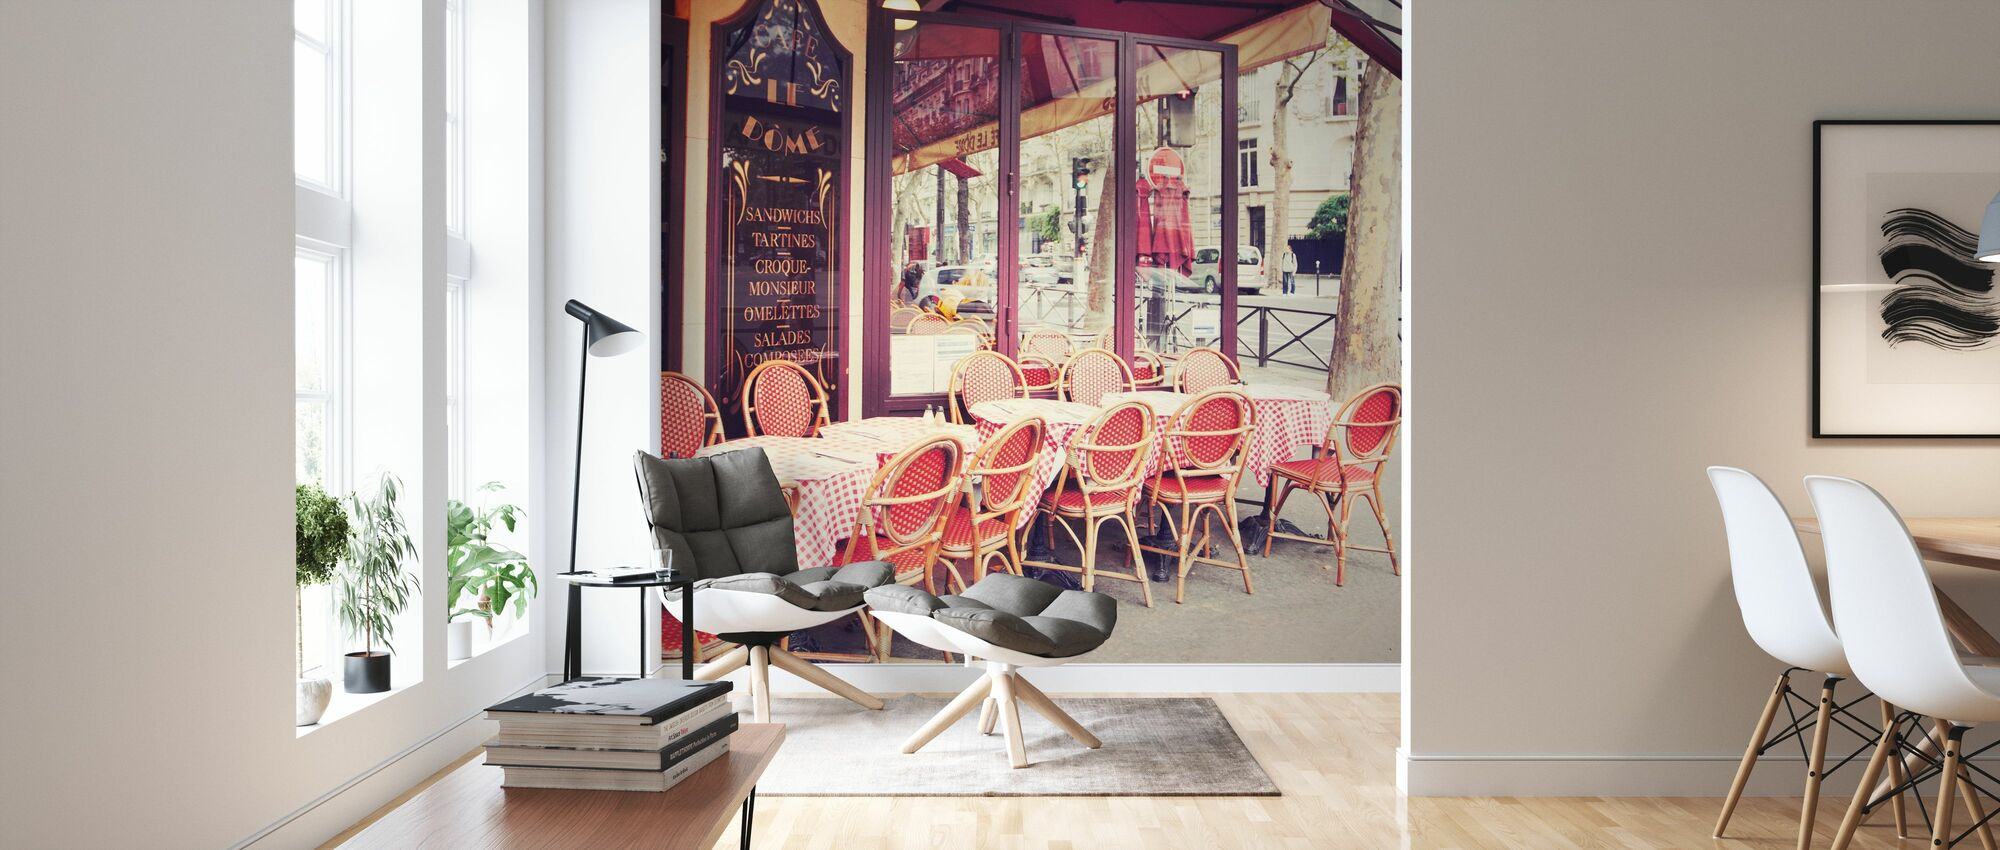 Cafe le Dome - Wallpaper - Living Room